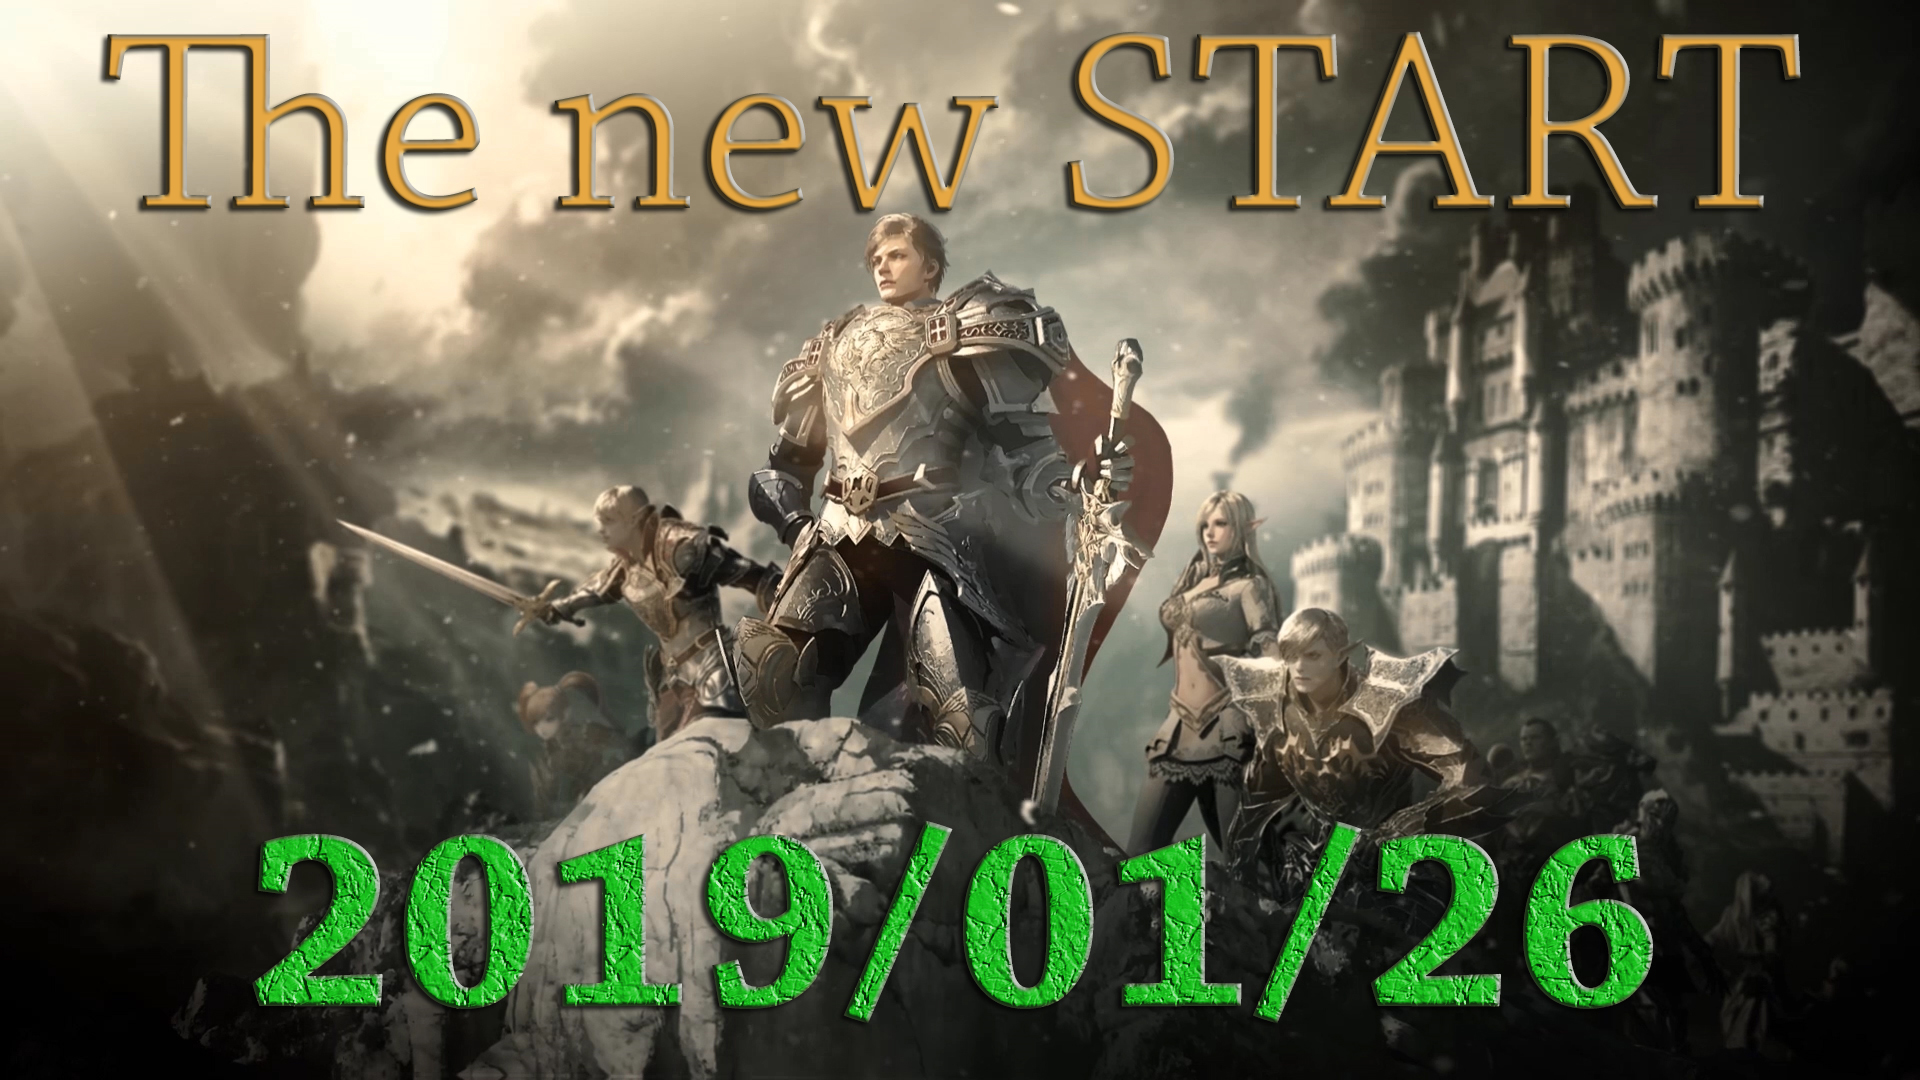 The New START: 26th January + Bonus & Events!